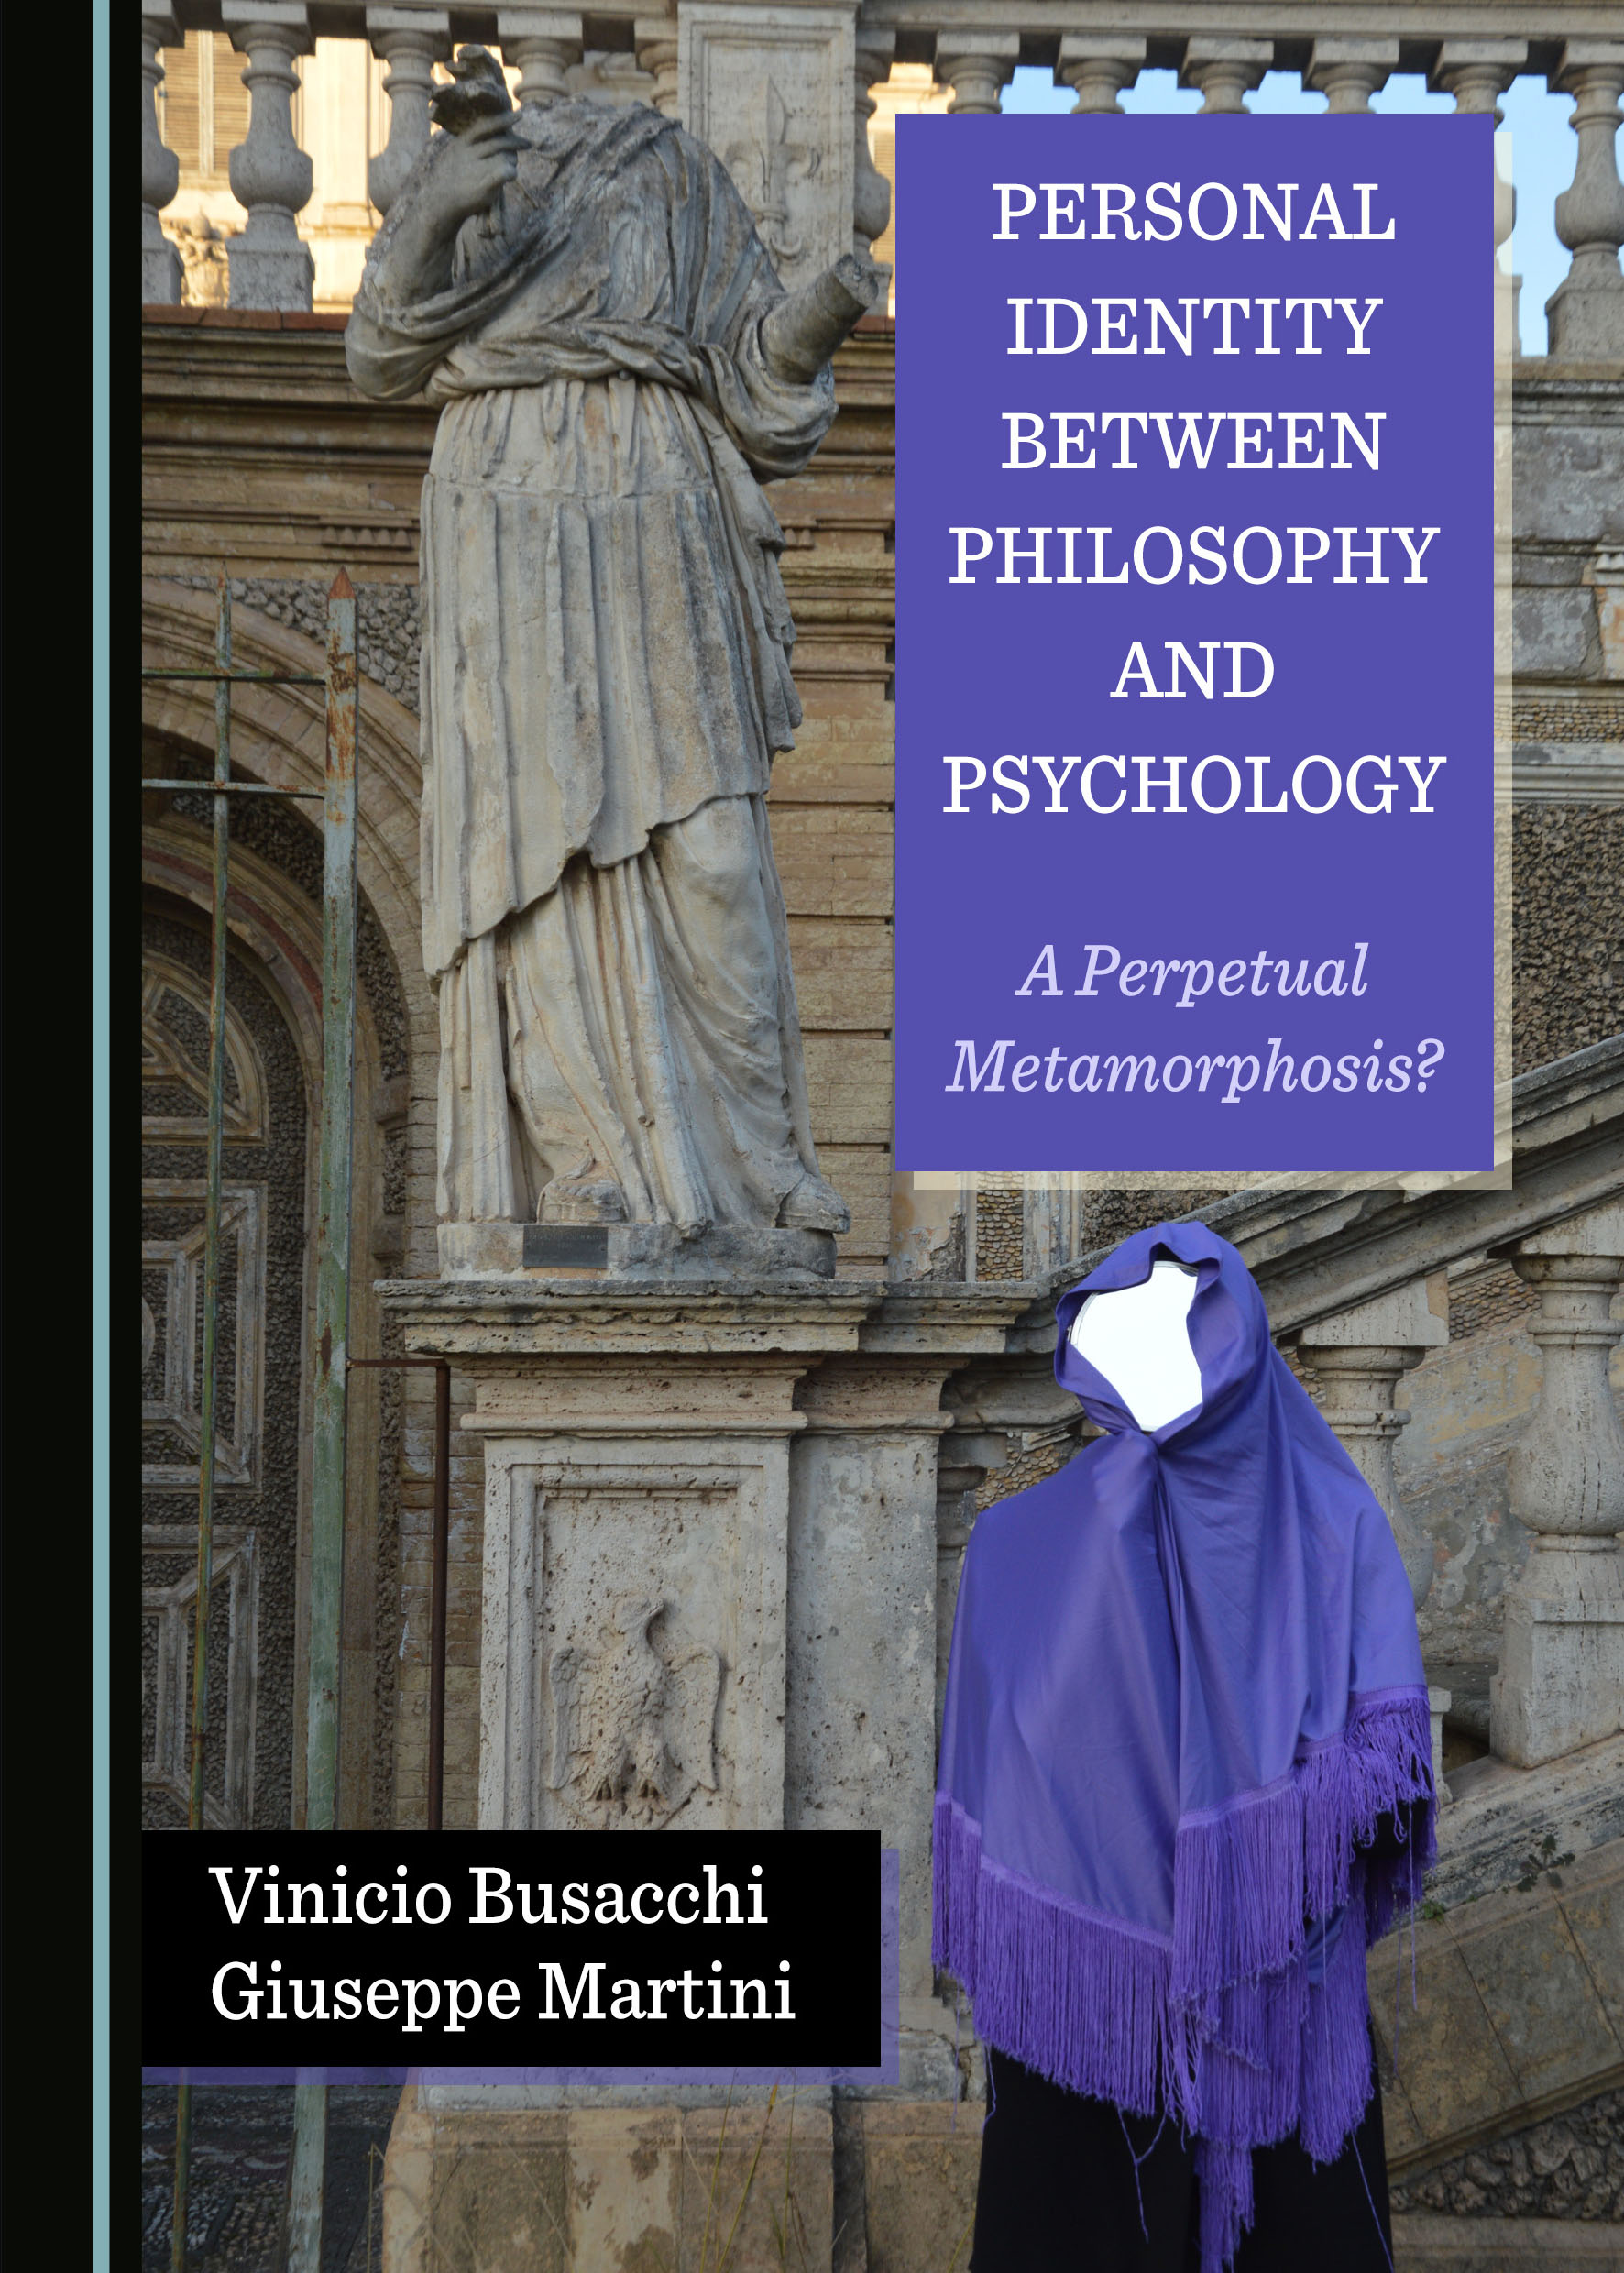 Personal Identity between Philosophy and Psychology: A Perpetual Metamorphosis?